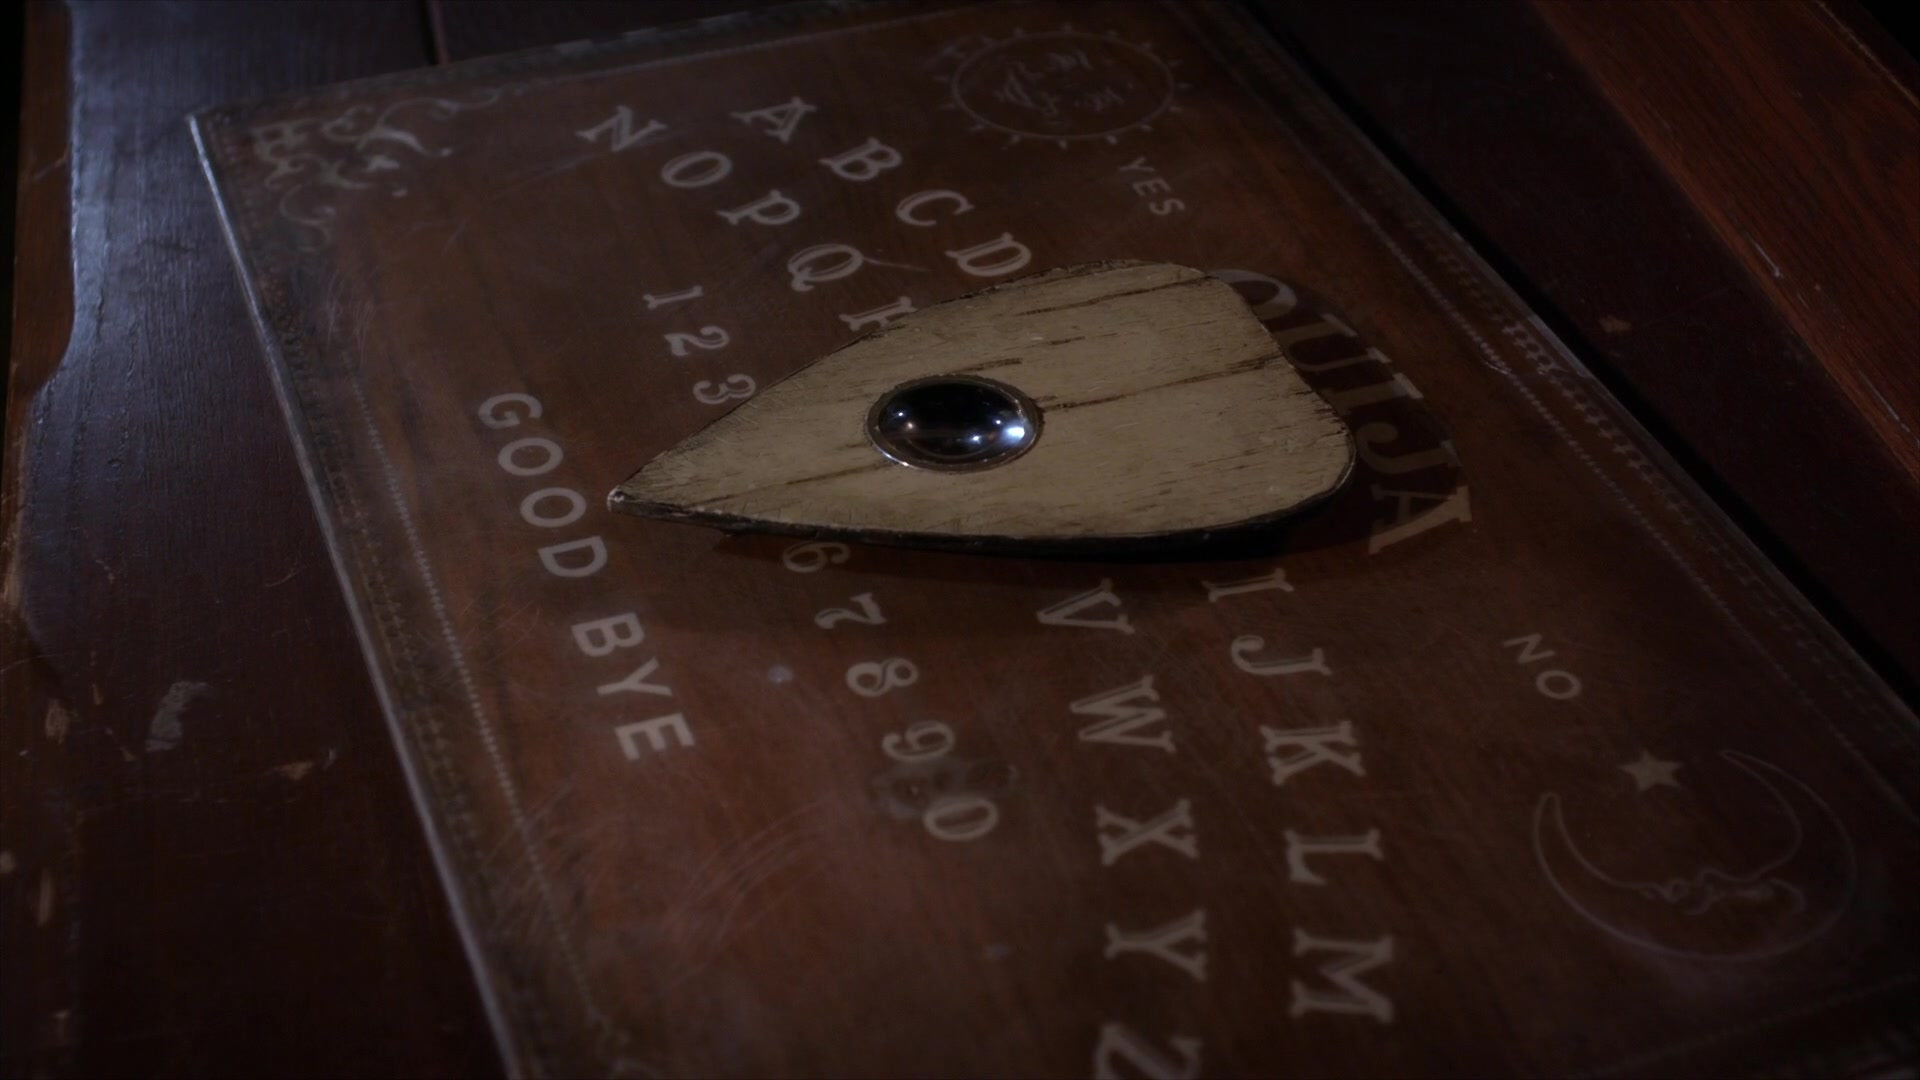 Horror Movie Review: Ouija (2014) - Games, Brrraaains & A